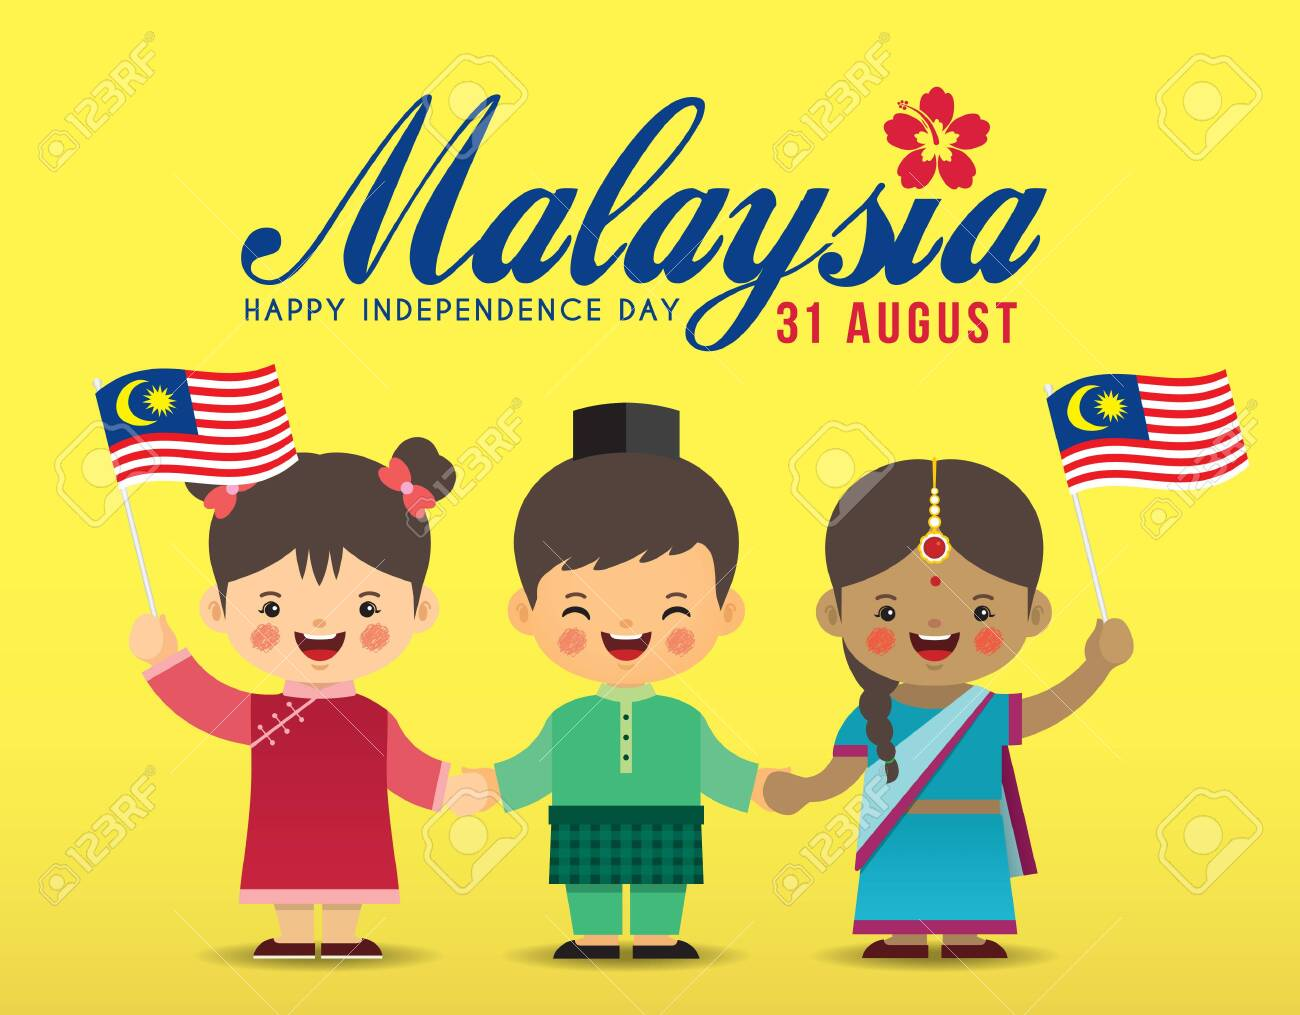 31 August - Malaysia Independence Day illustration. Cute cartoon kids of Malay, Indian & Chinese holding hands together with Malaysia flag in flat vector design. - 128327988